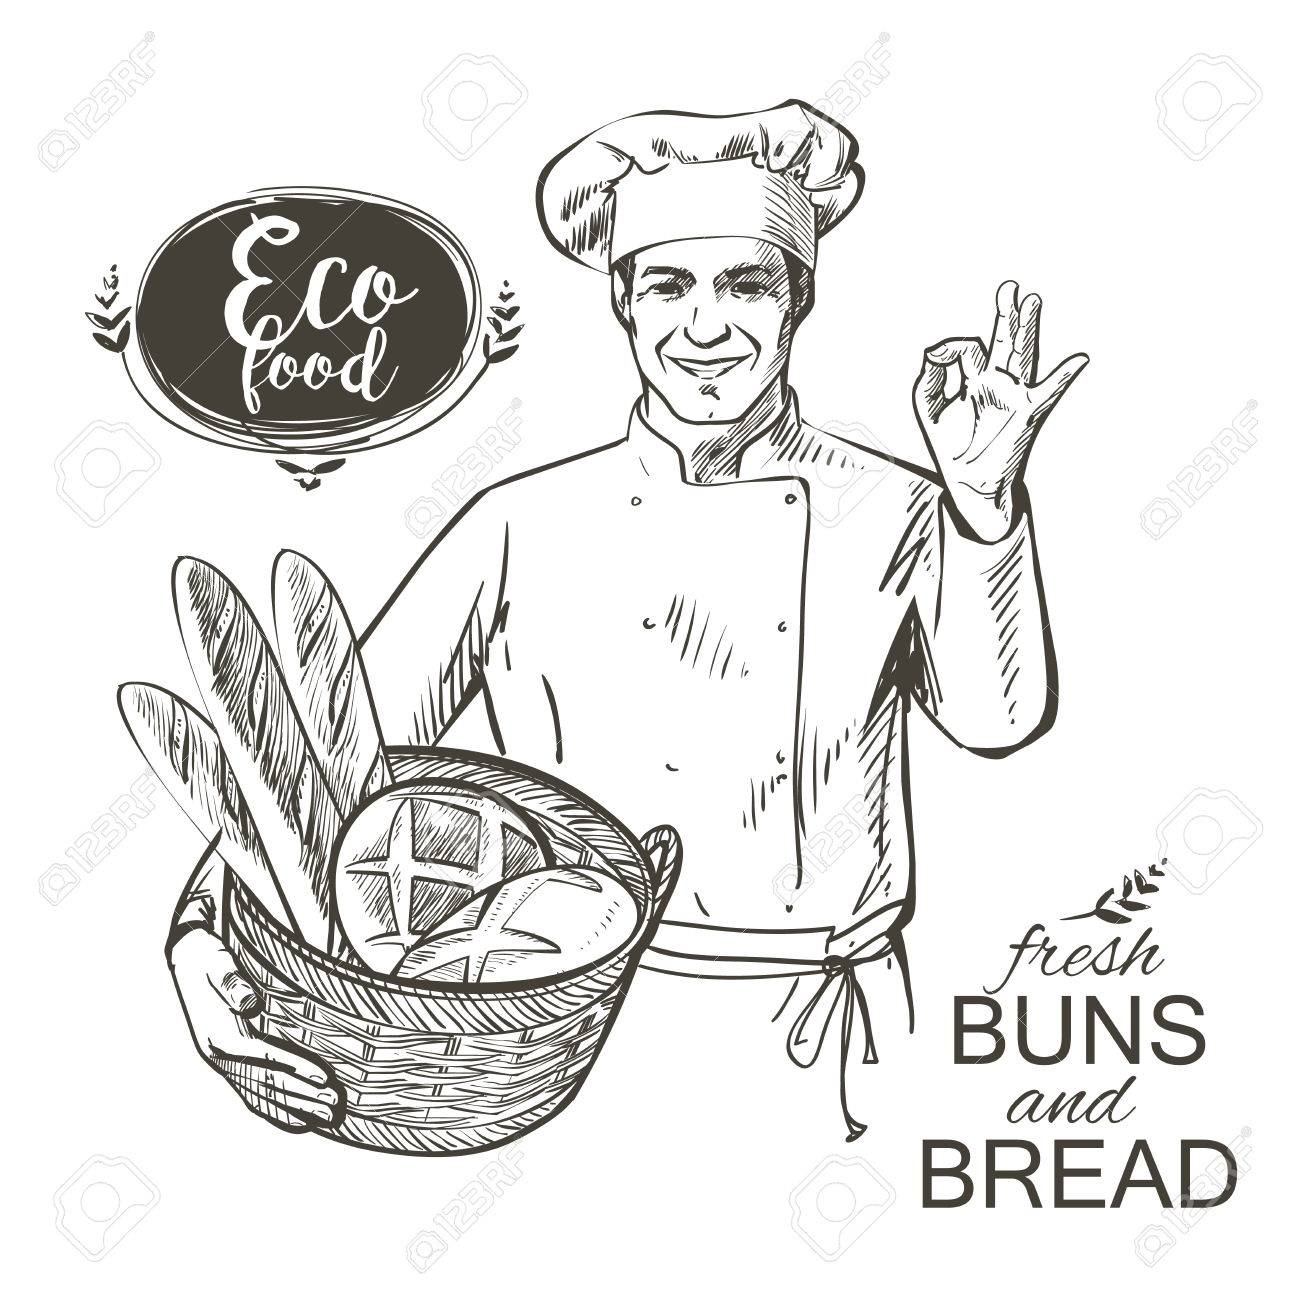 baker in uniform carrying a basket with baked bread illustration - 62240423